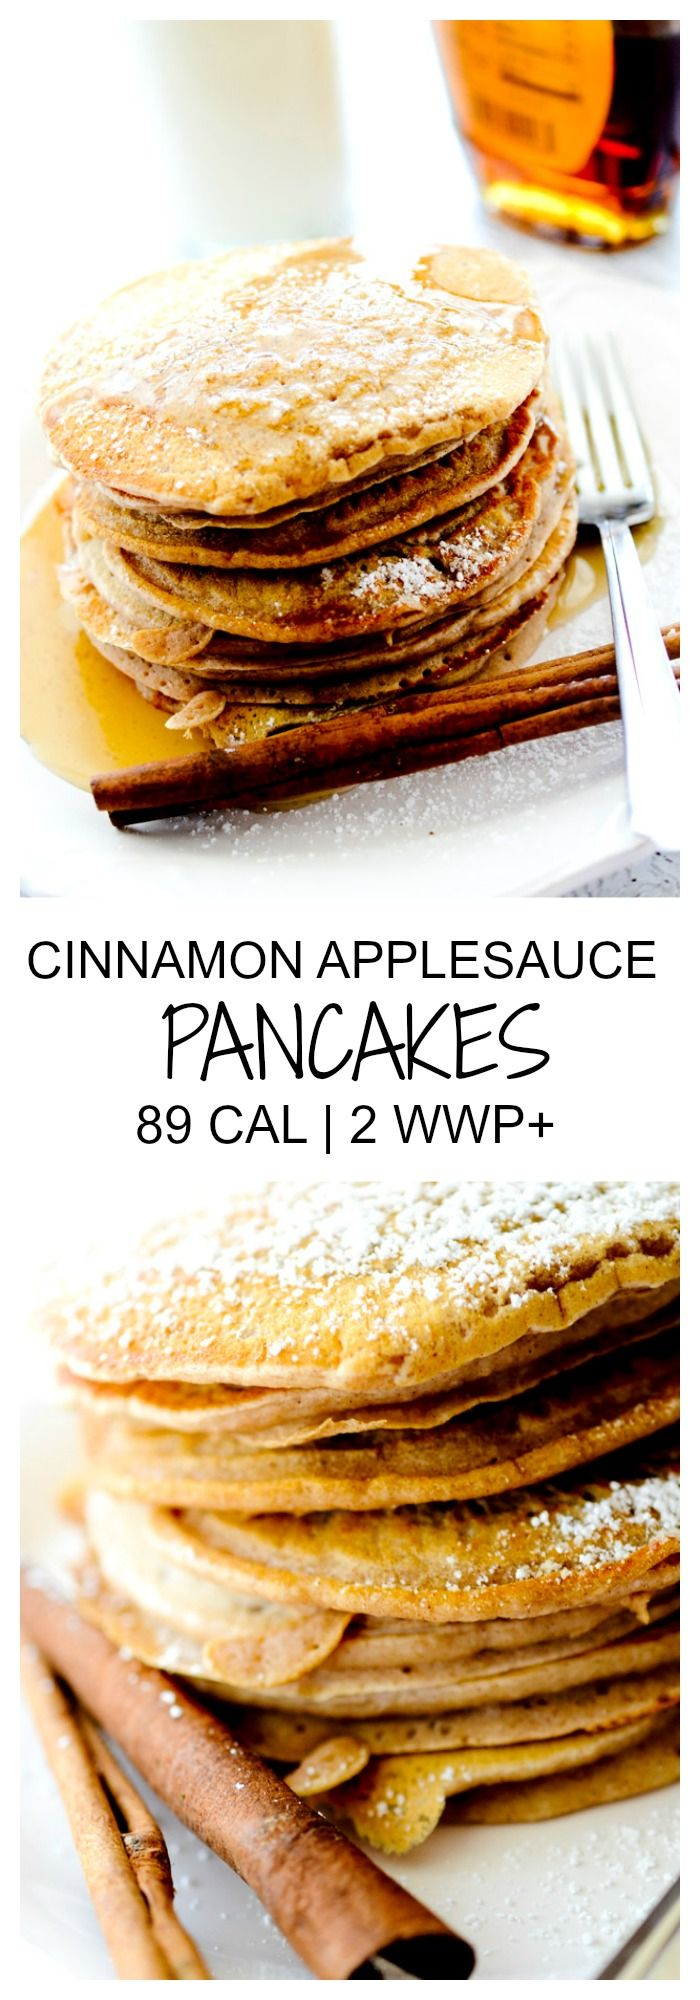 Cinnamon Applesauce Pancakes  - 89 Cal and 2 WWP+ per serving - Recipe Diaries #apples #Fall